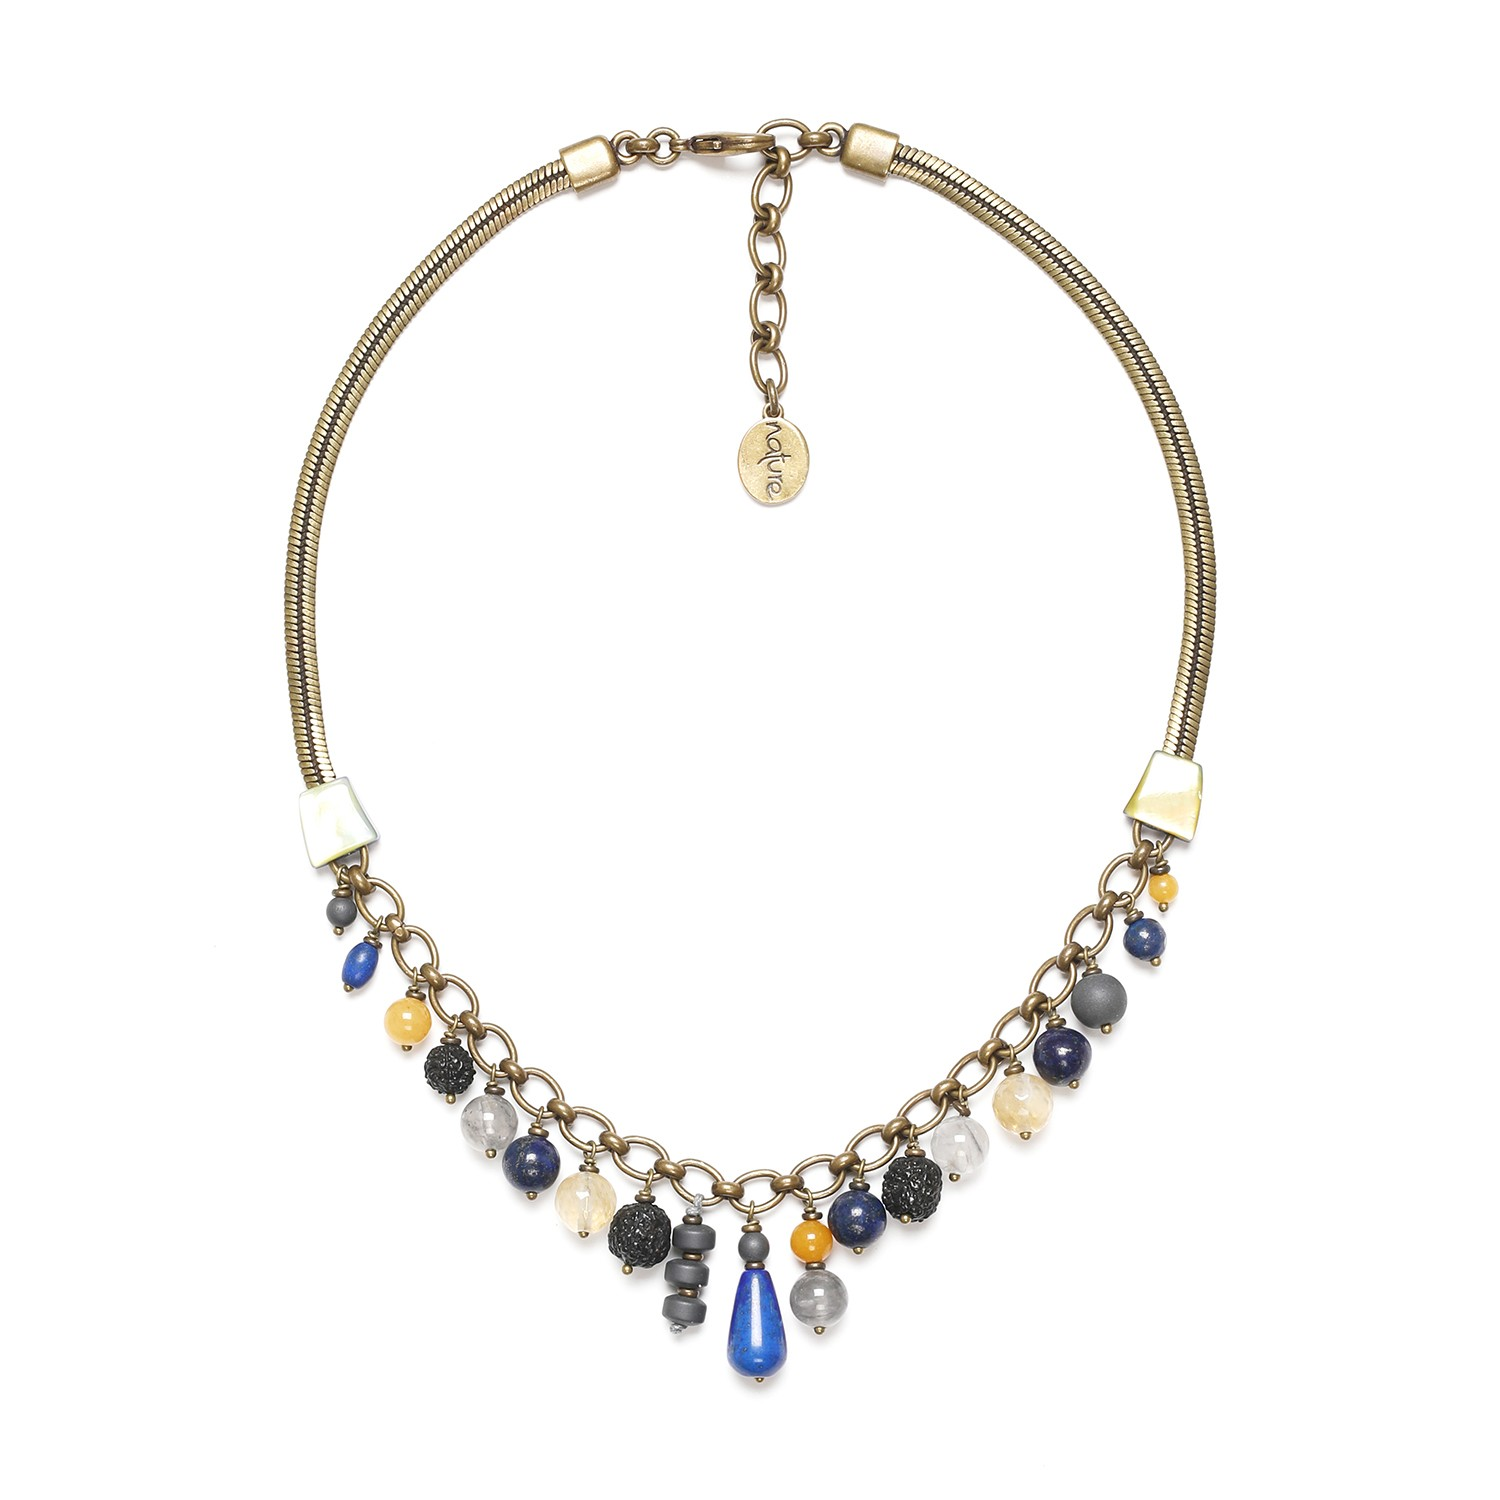 BLUE TRIBE dangles necklace